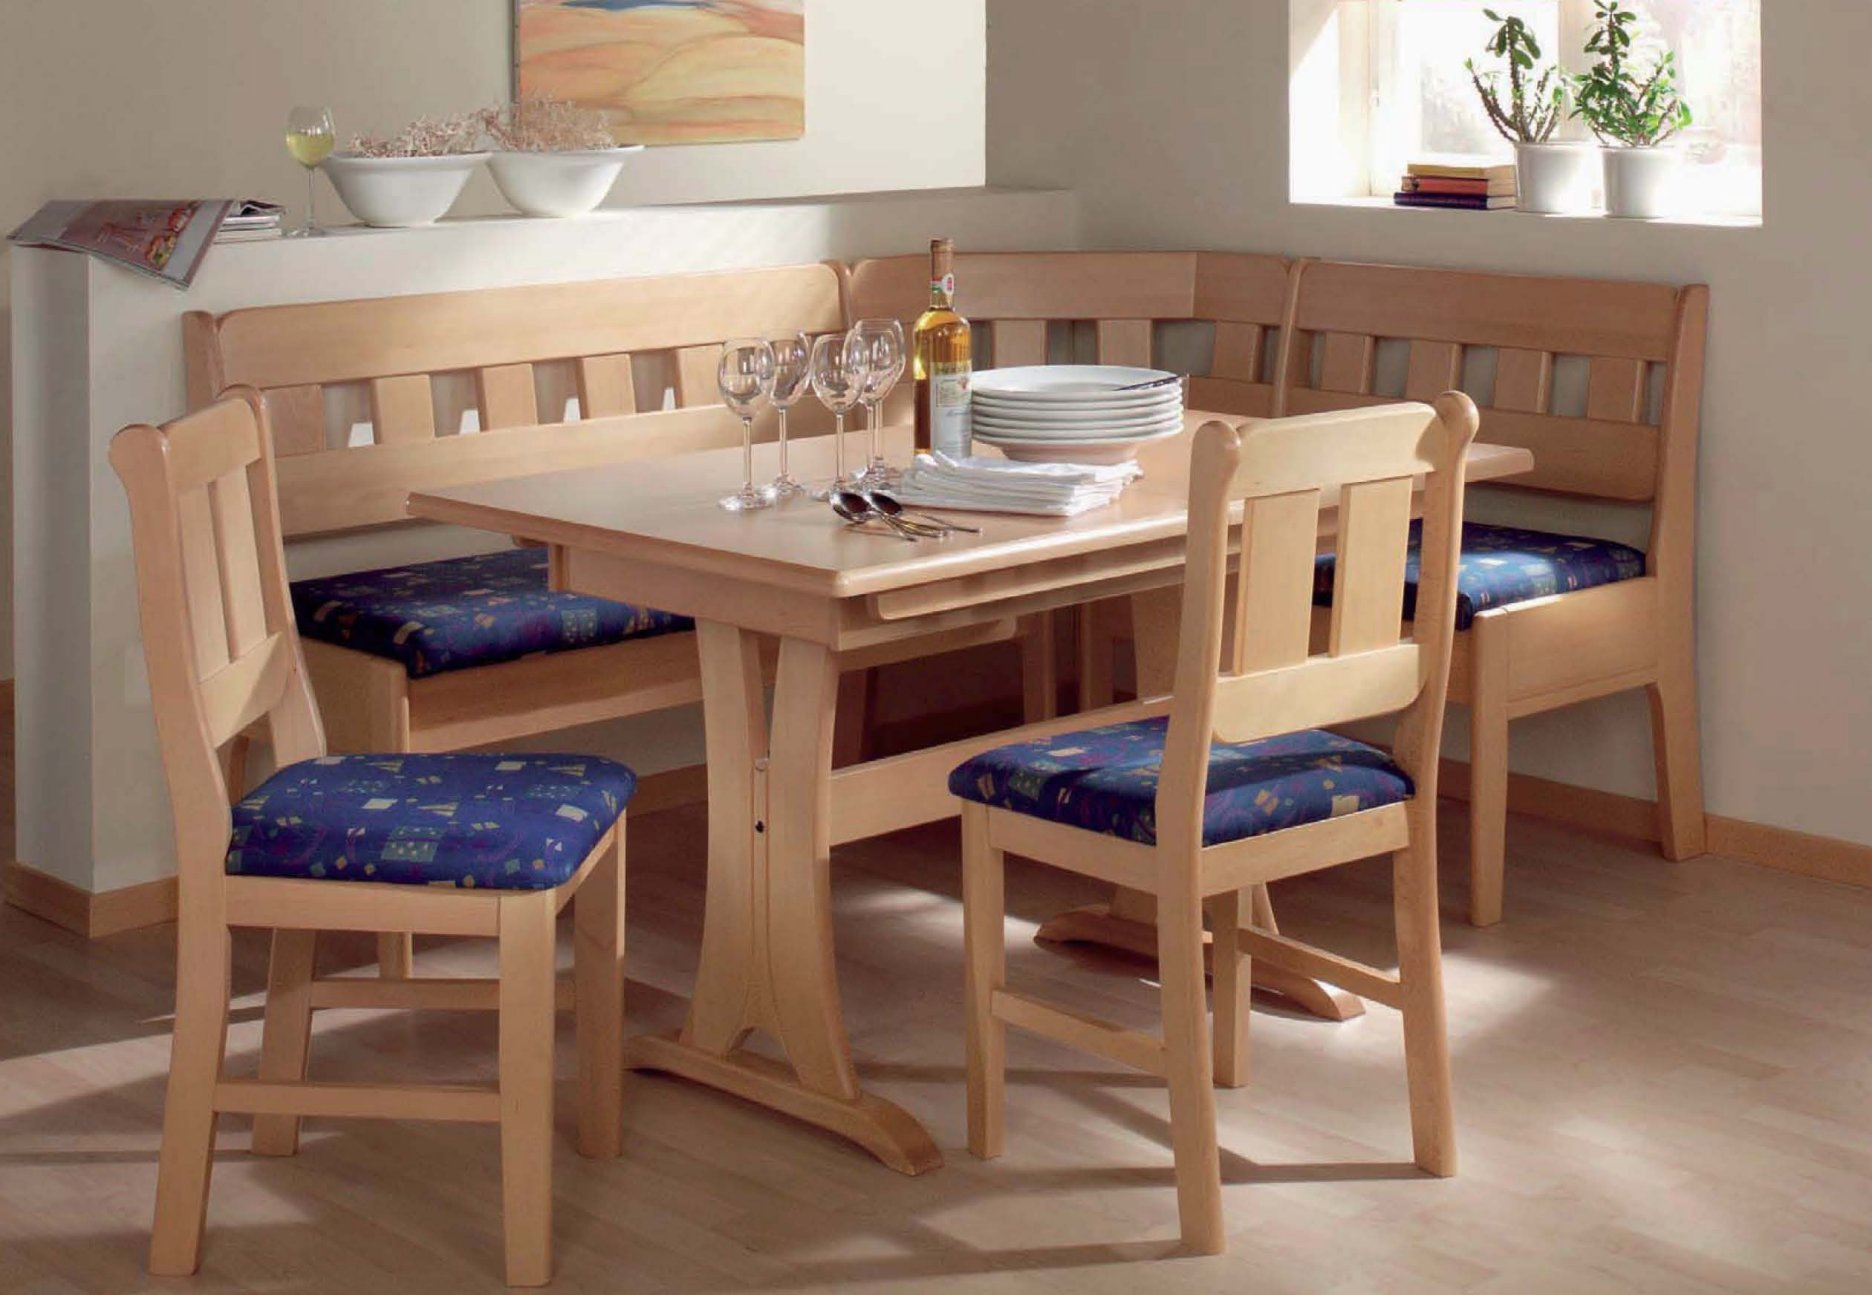 20 Photos Of The Breakfast Nook Tables Save Your Kitchen From The Numerous  Numbers Of Chairs